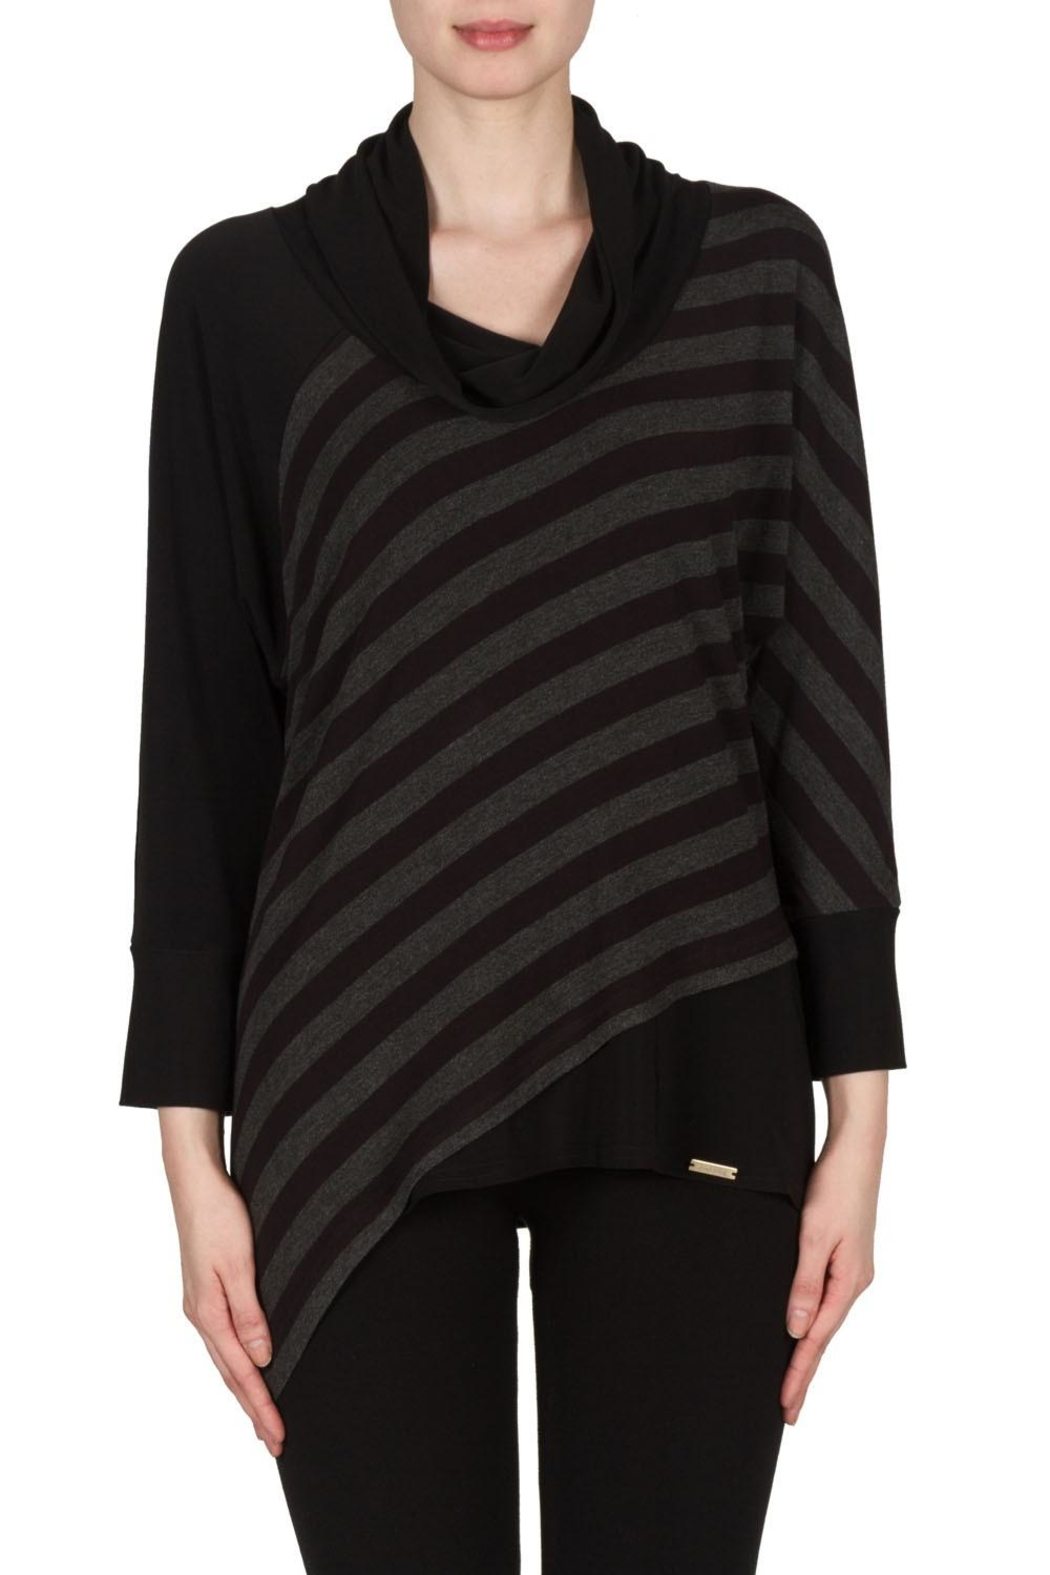 Joseph Ribkoff Striped Cowl Top - Main Image